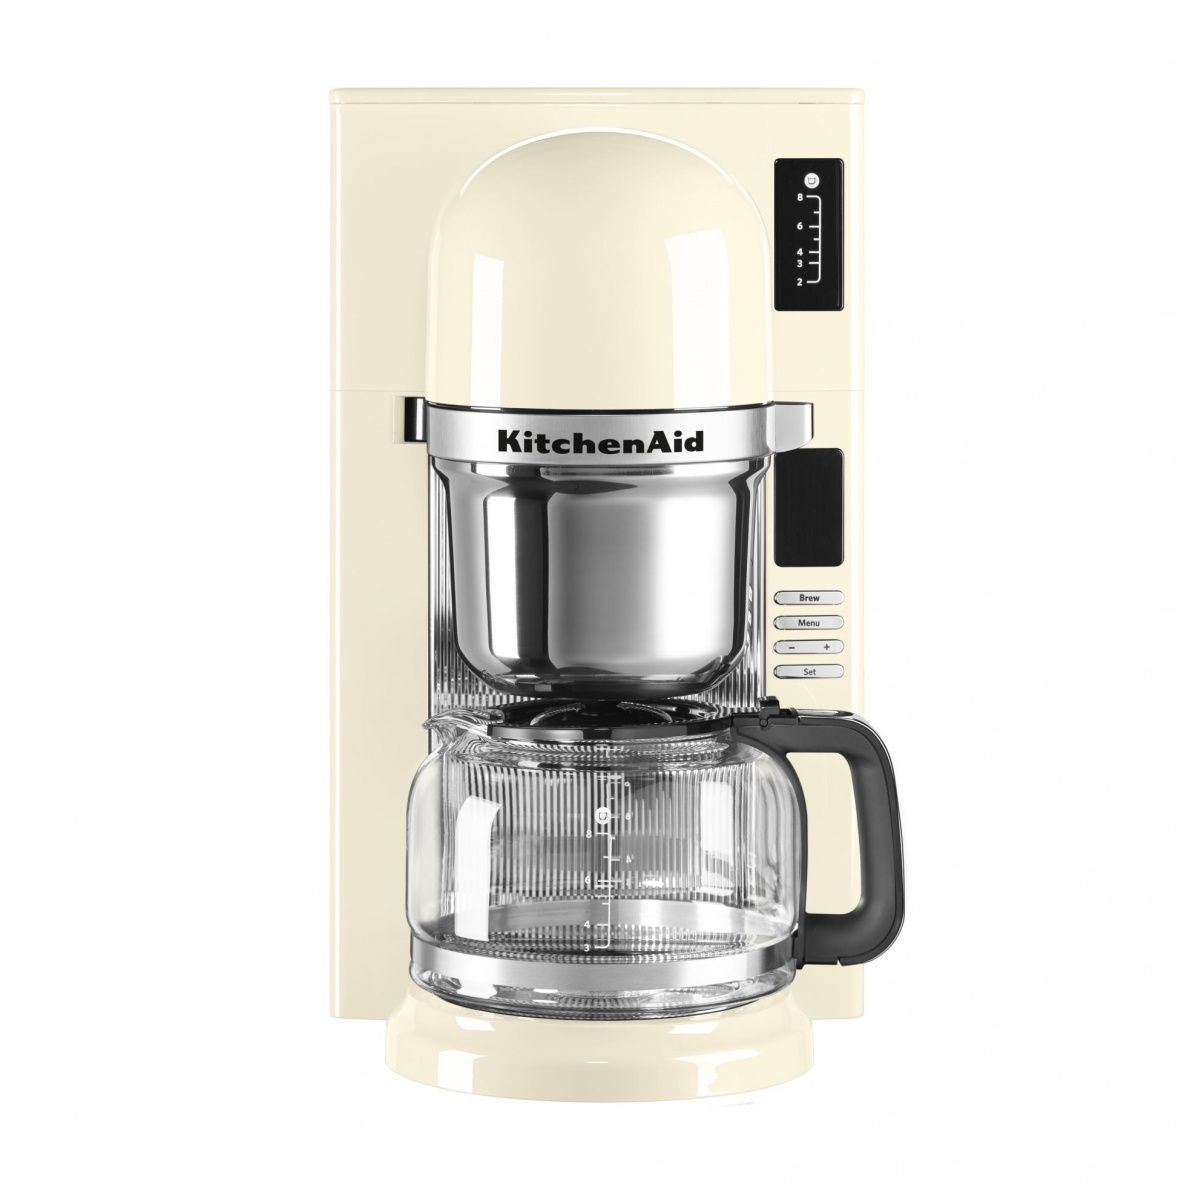 Kitchenaid 5kcm0802 Pour Over Coffee Brewer Creme 2 8 Cups